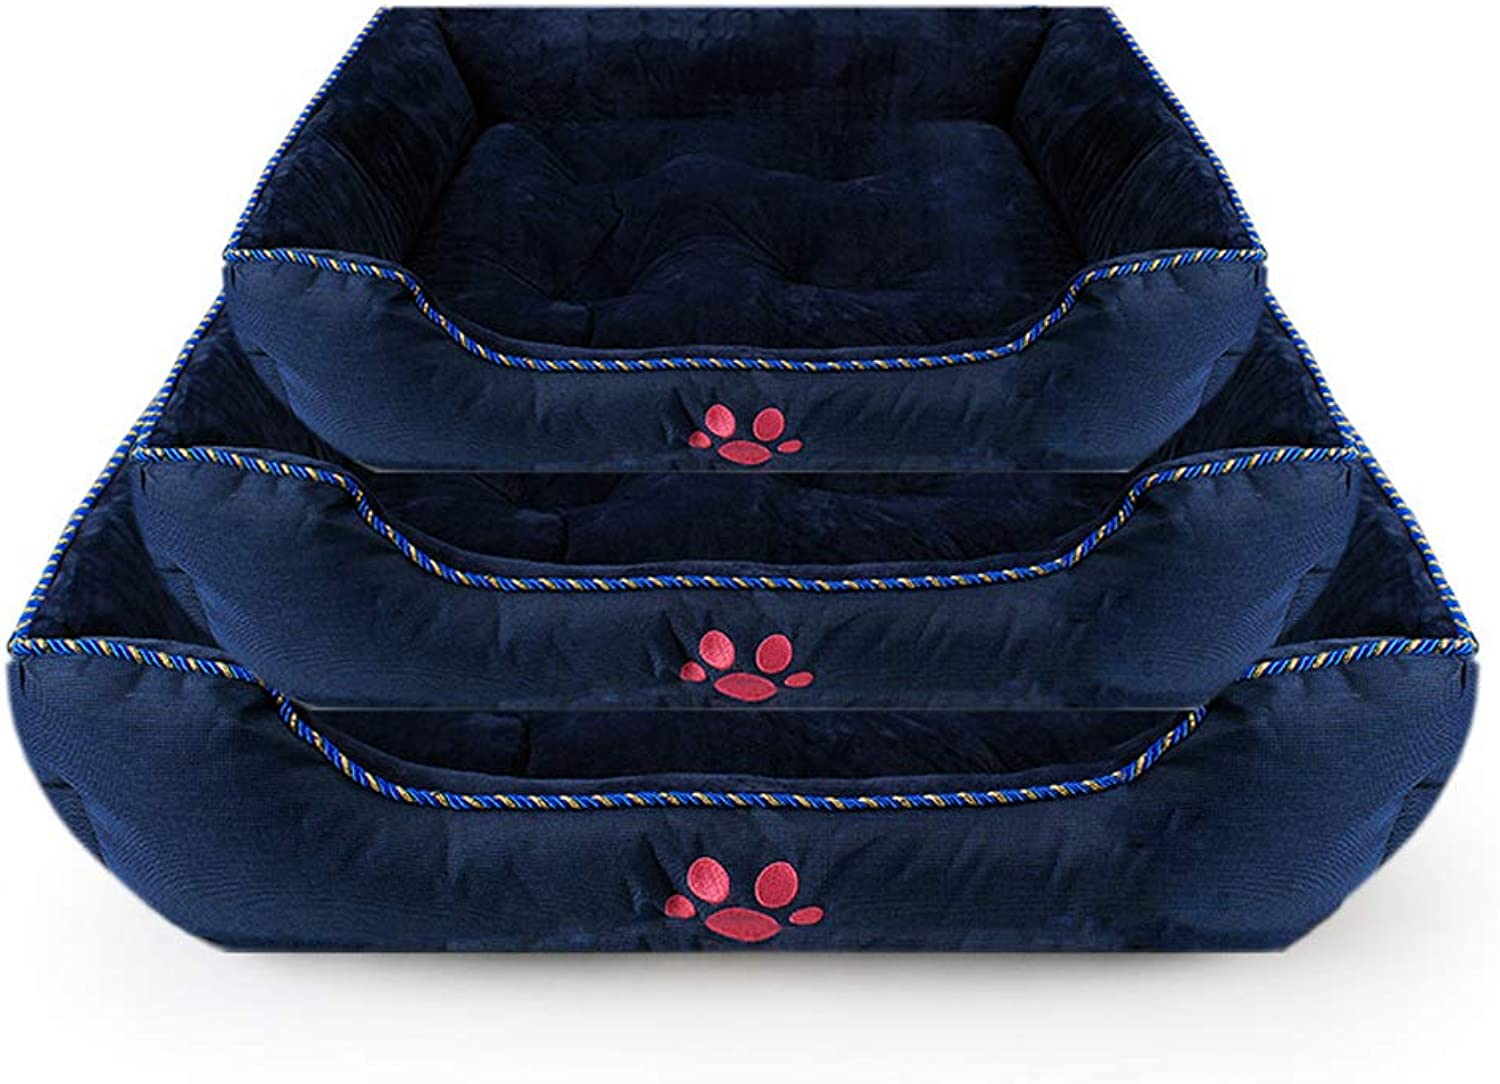 Dog Bed Soft Waterproof Washable Hardwearing Basket,Three in One to Meet The Needs of Different Age Groups of Pets